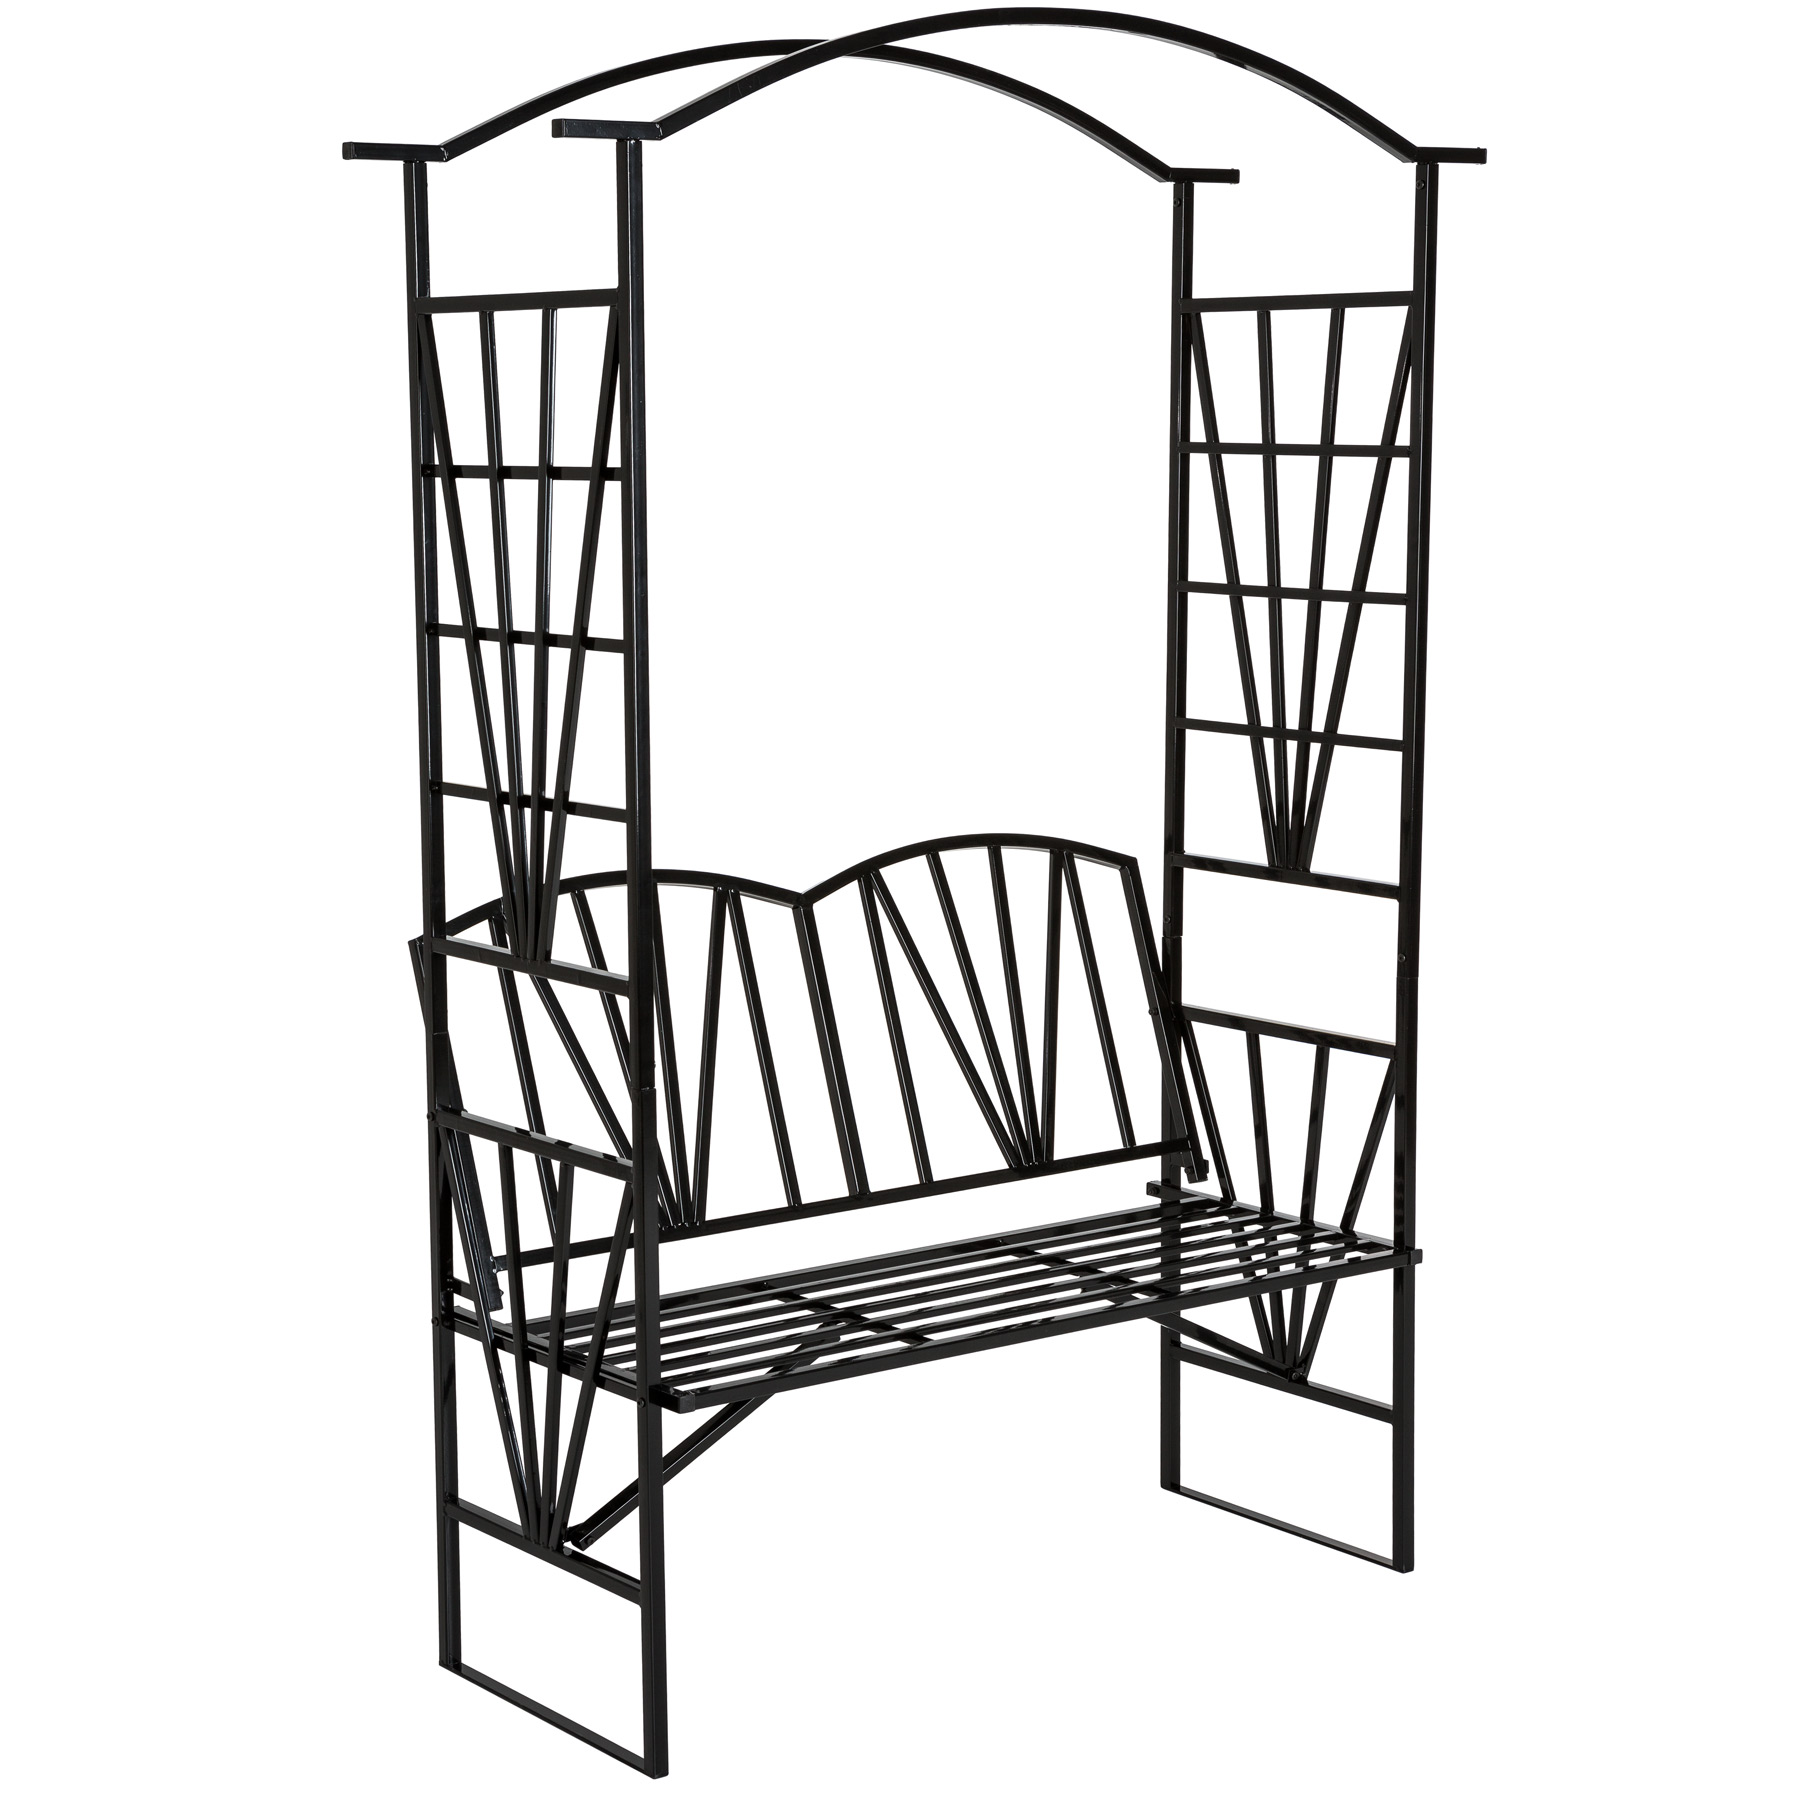 16 Attractive Window Seat Designs For Pleasant Relaxation: GARDEN ROSE ARCH TRELLIS CLIMBING PLANTS ROSES WITH BENCH